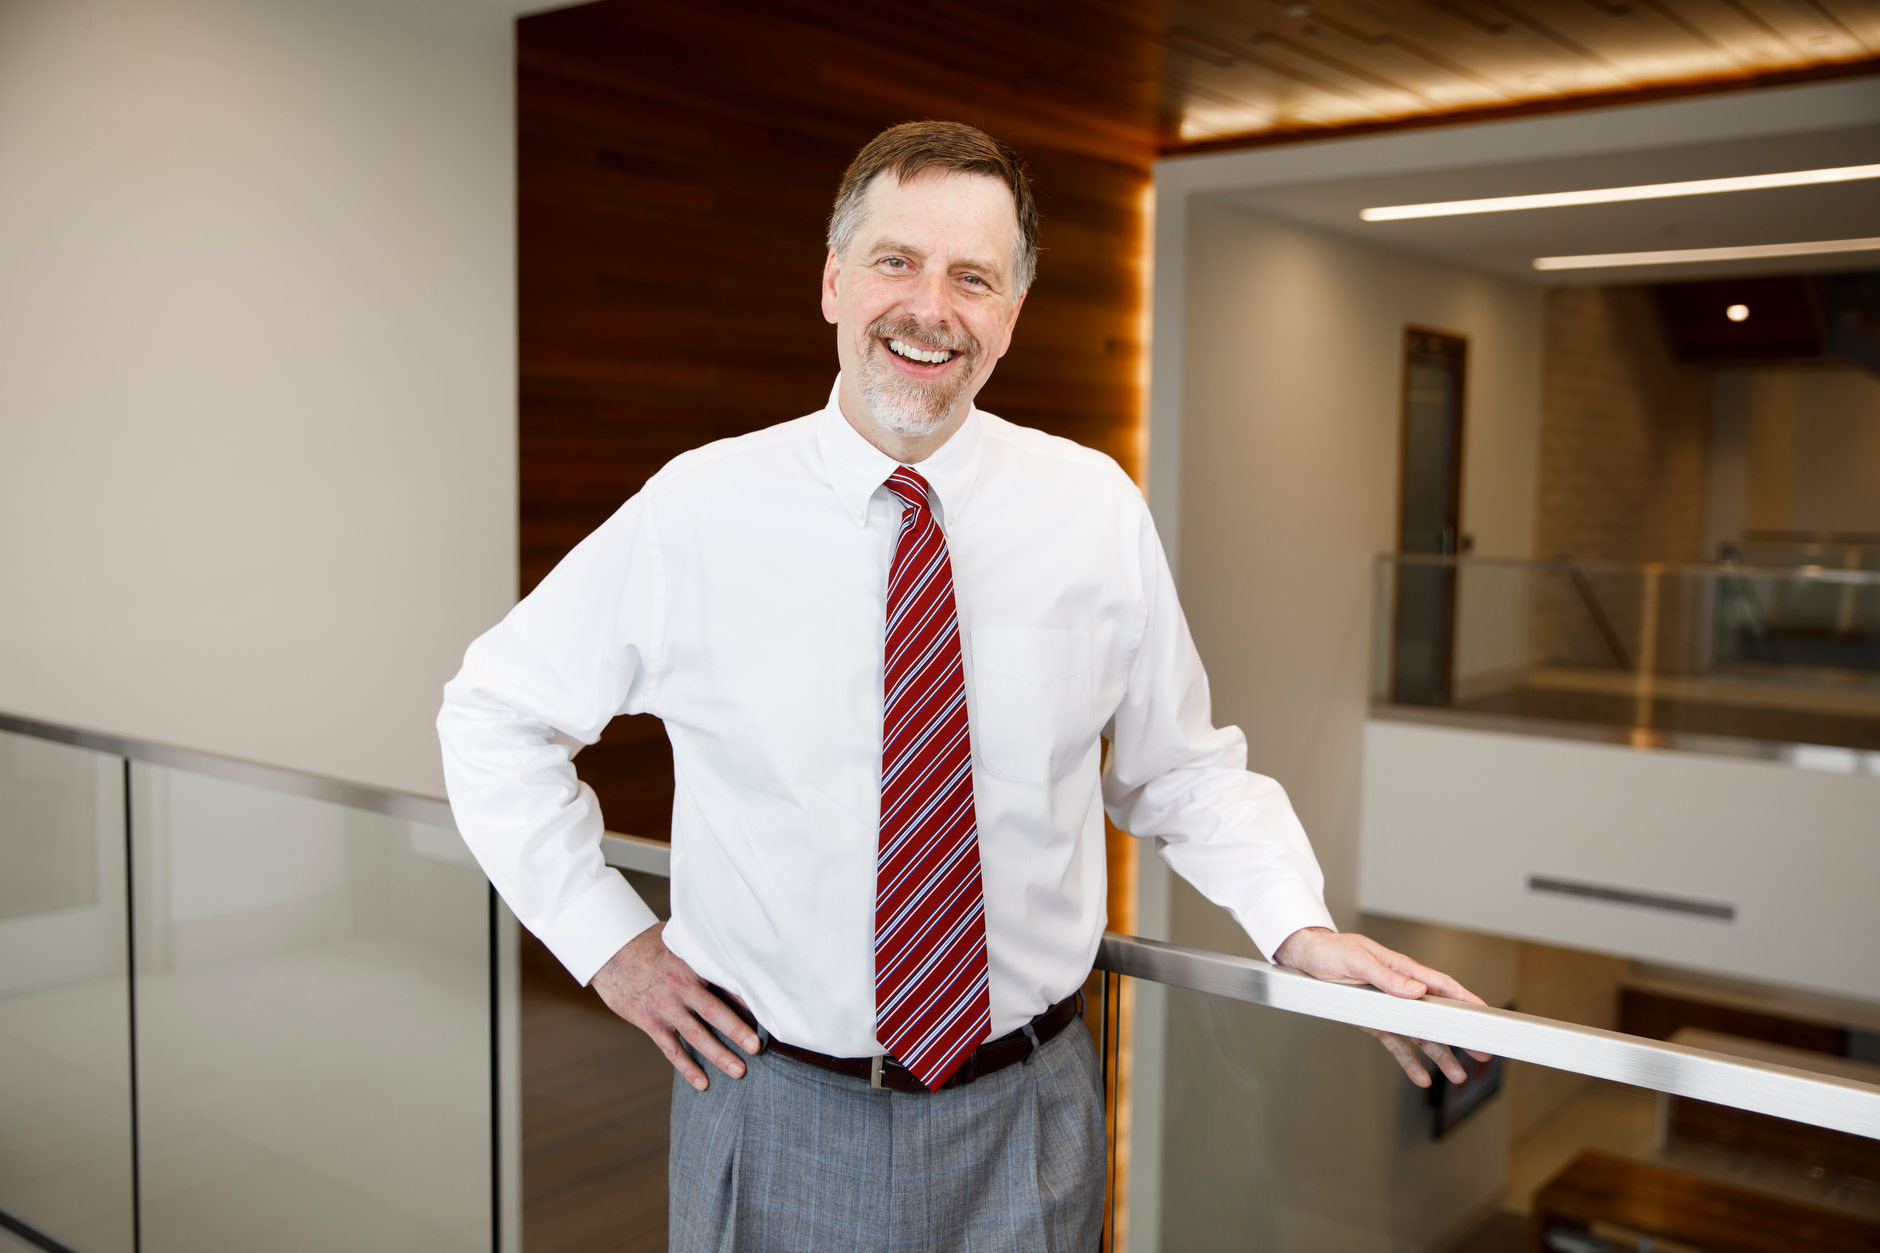 Bob Auer, senior portfolio manager for SBAuer Funds LLC, poses for a portrait at his office in Indianapolis on Thursday, June 27, 2019. (James Brosher for The Wall Street Journal)